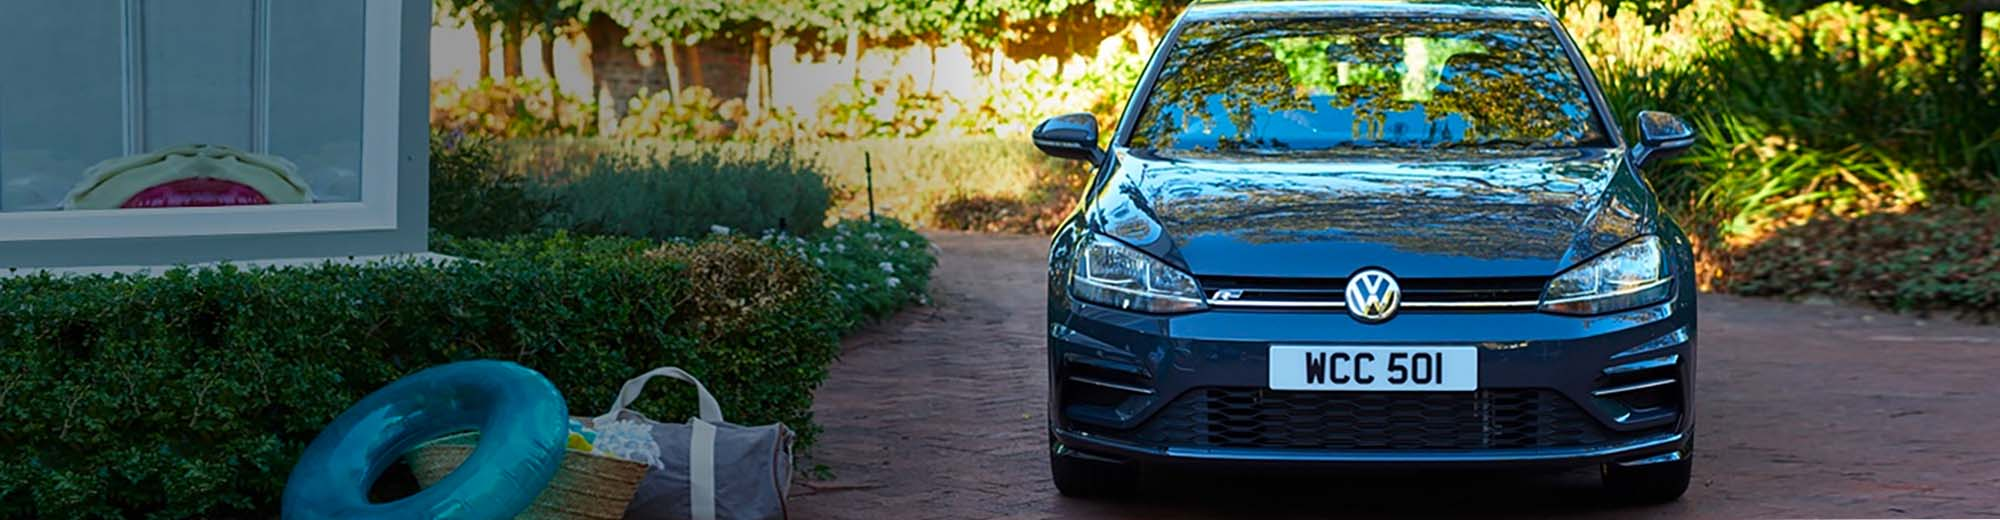 Golf R-Line in Urano Grey